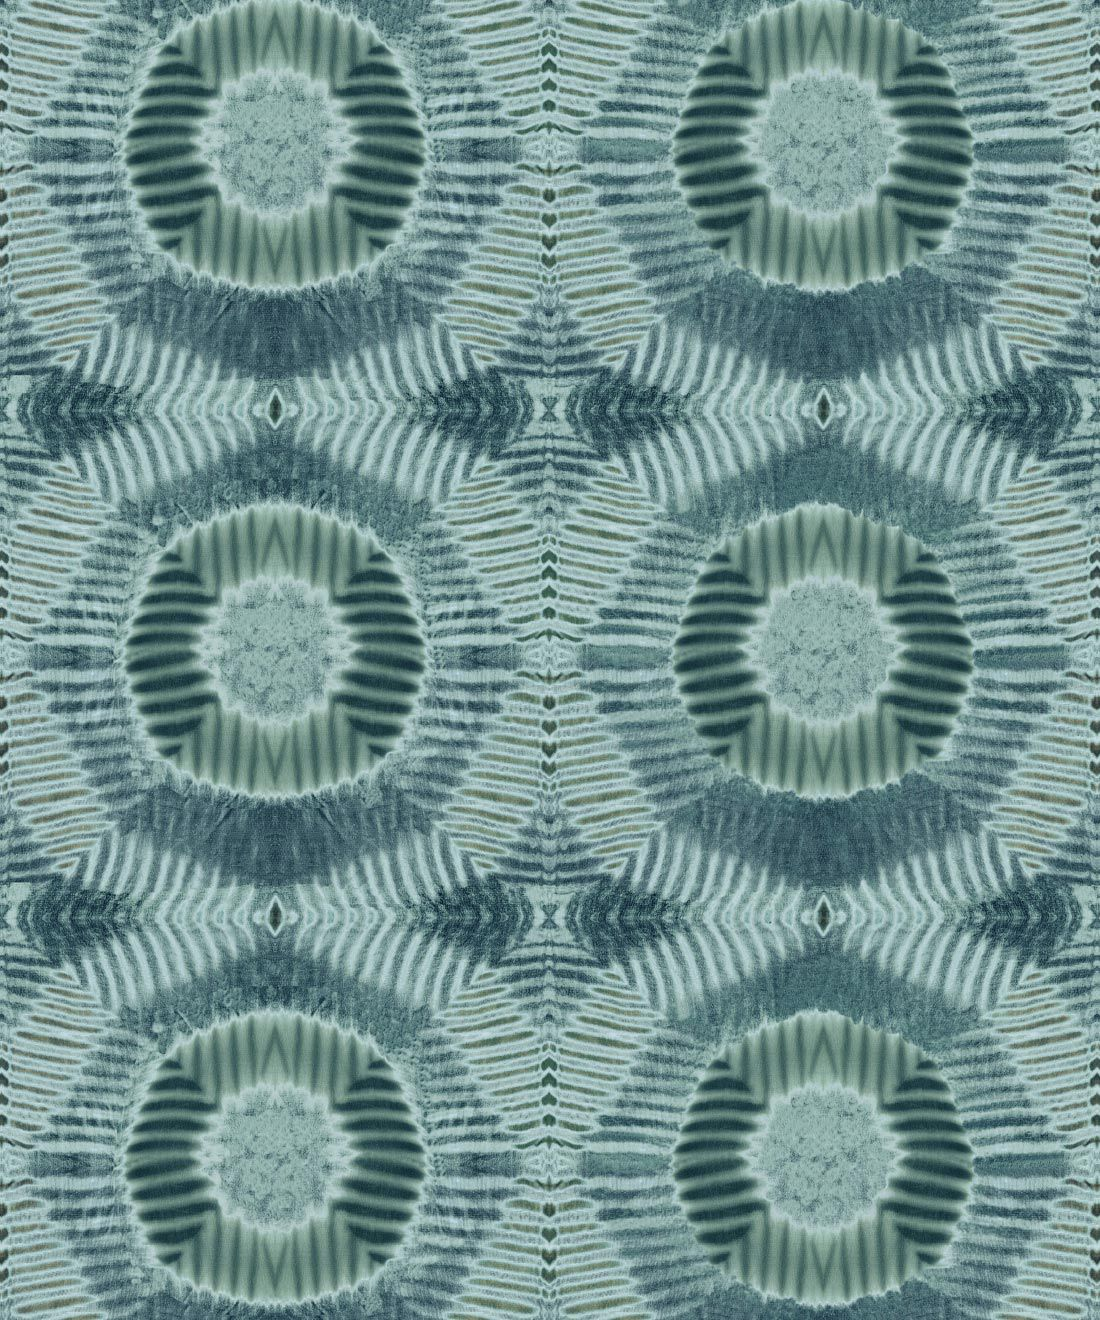 Aztec Suns Wallpaper Sage • Shibori Geometric • Swatch